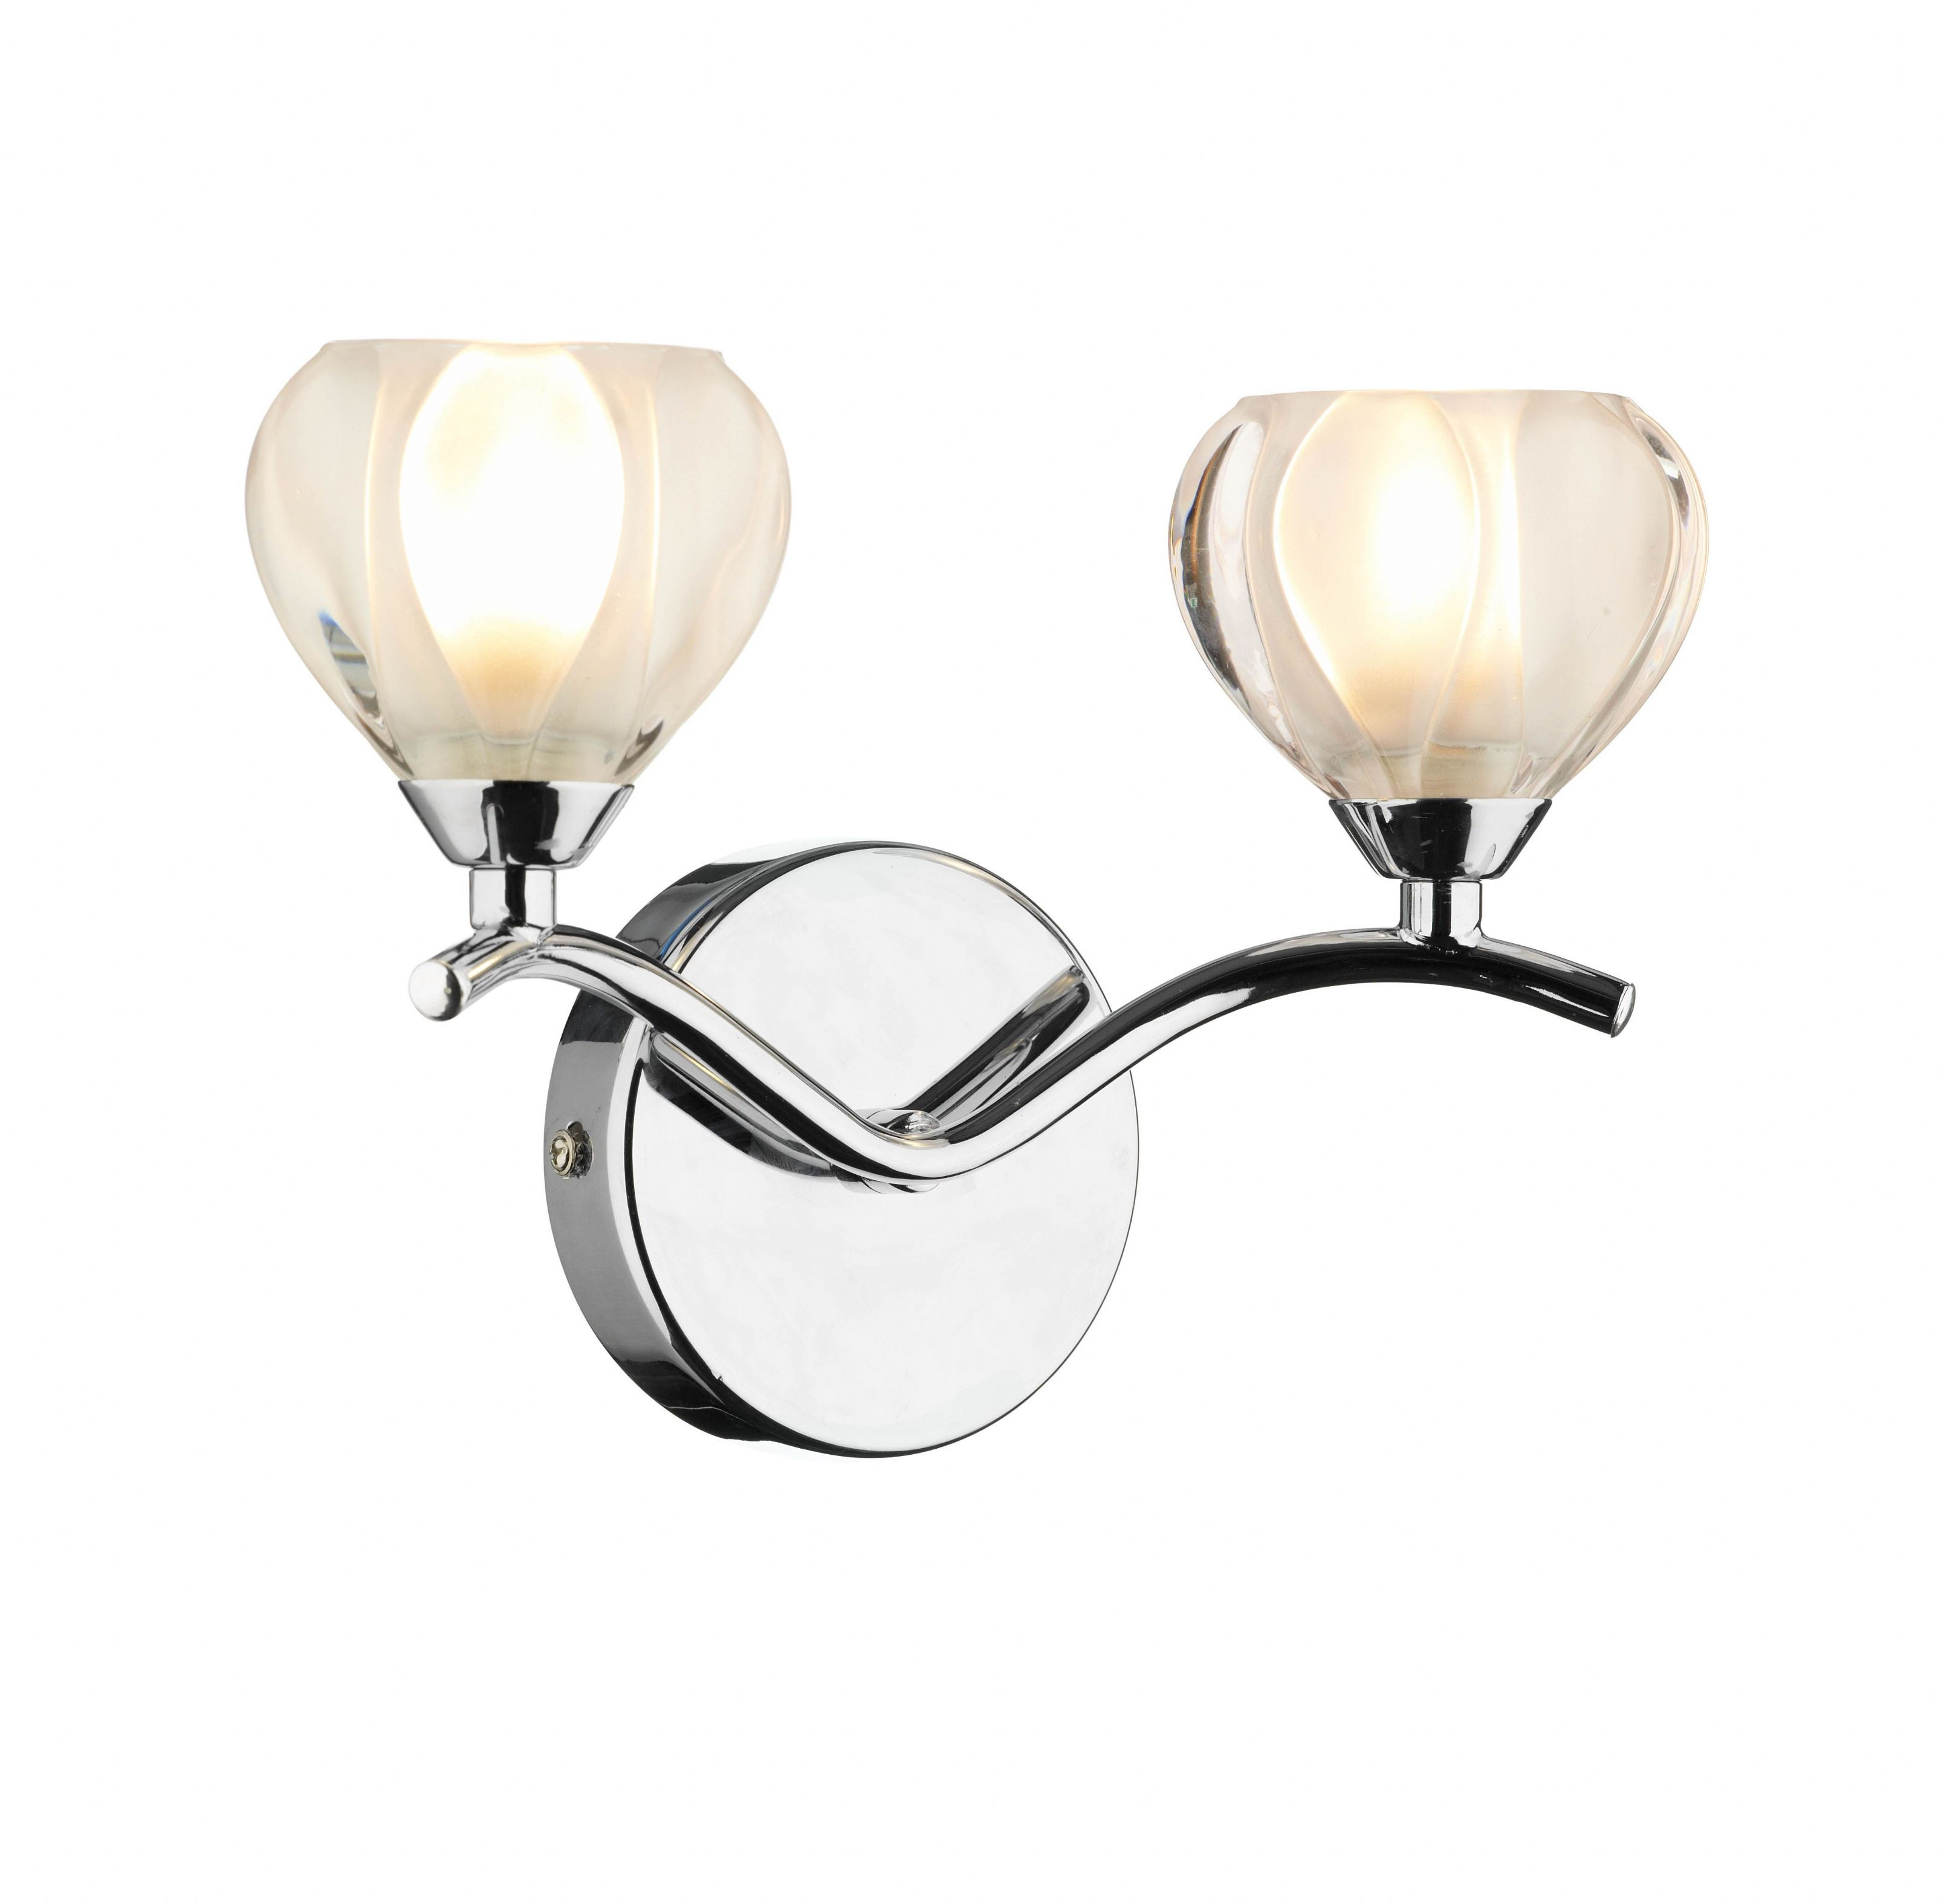 Double Insulated Class 2 Wall Lights : Cynthia 2-light Polished Chrome Wall Light 021776 Class 2 Double Insulated BXCYN0950-17